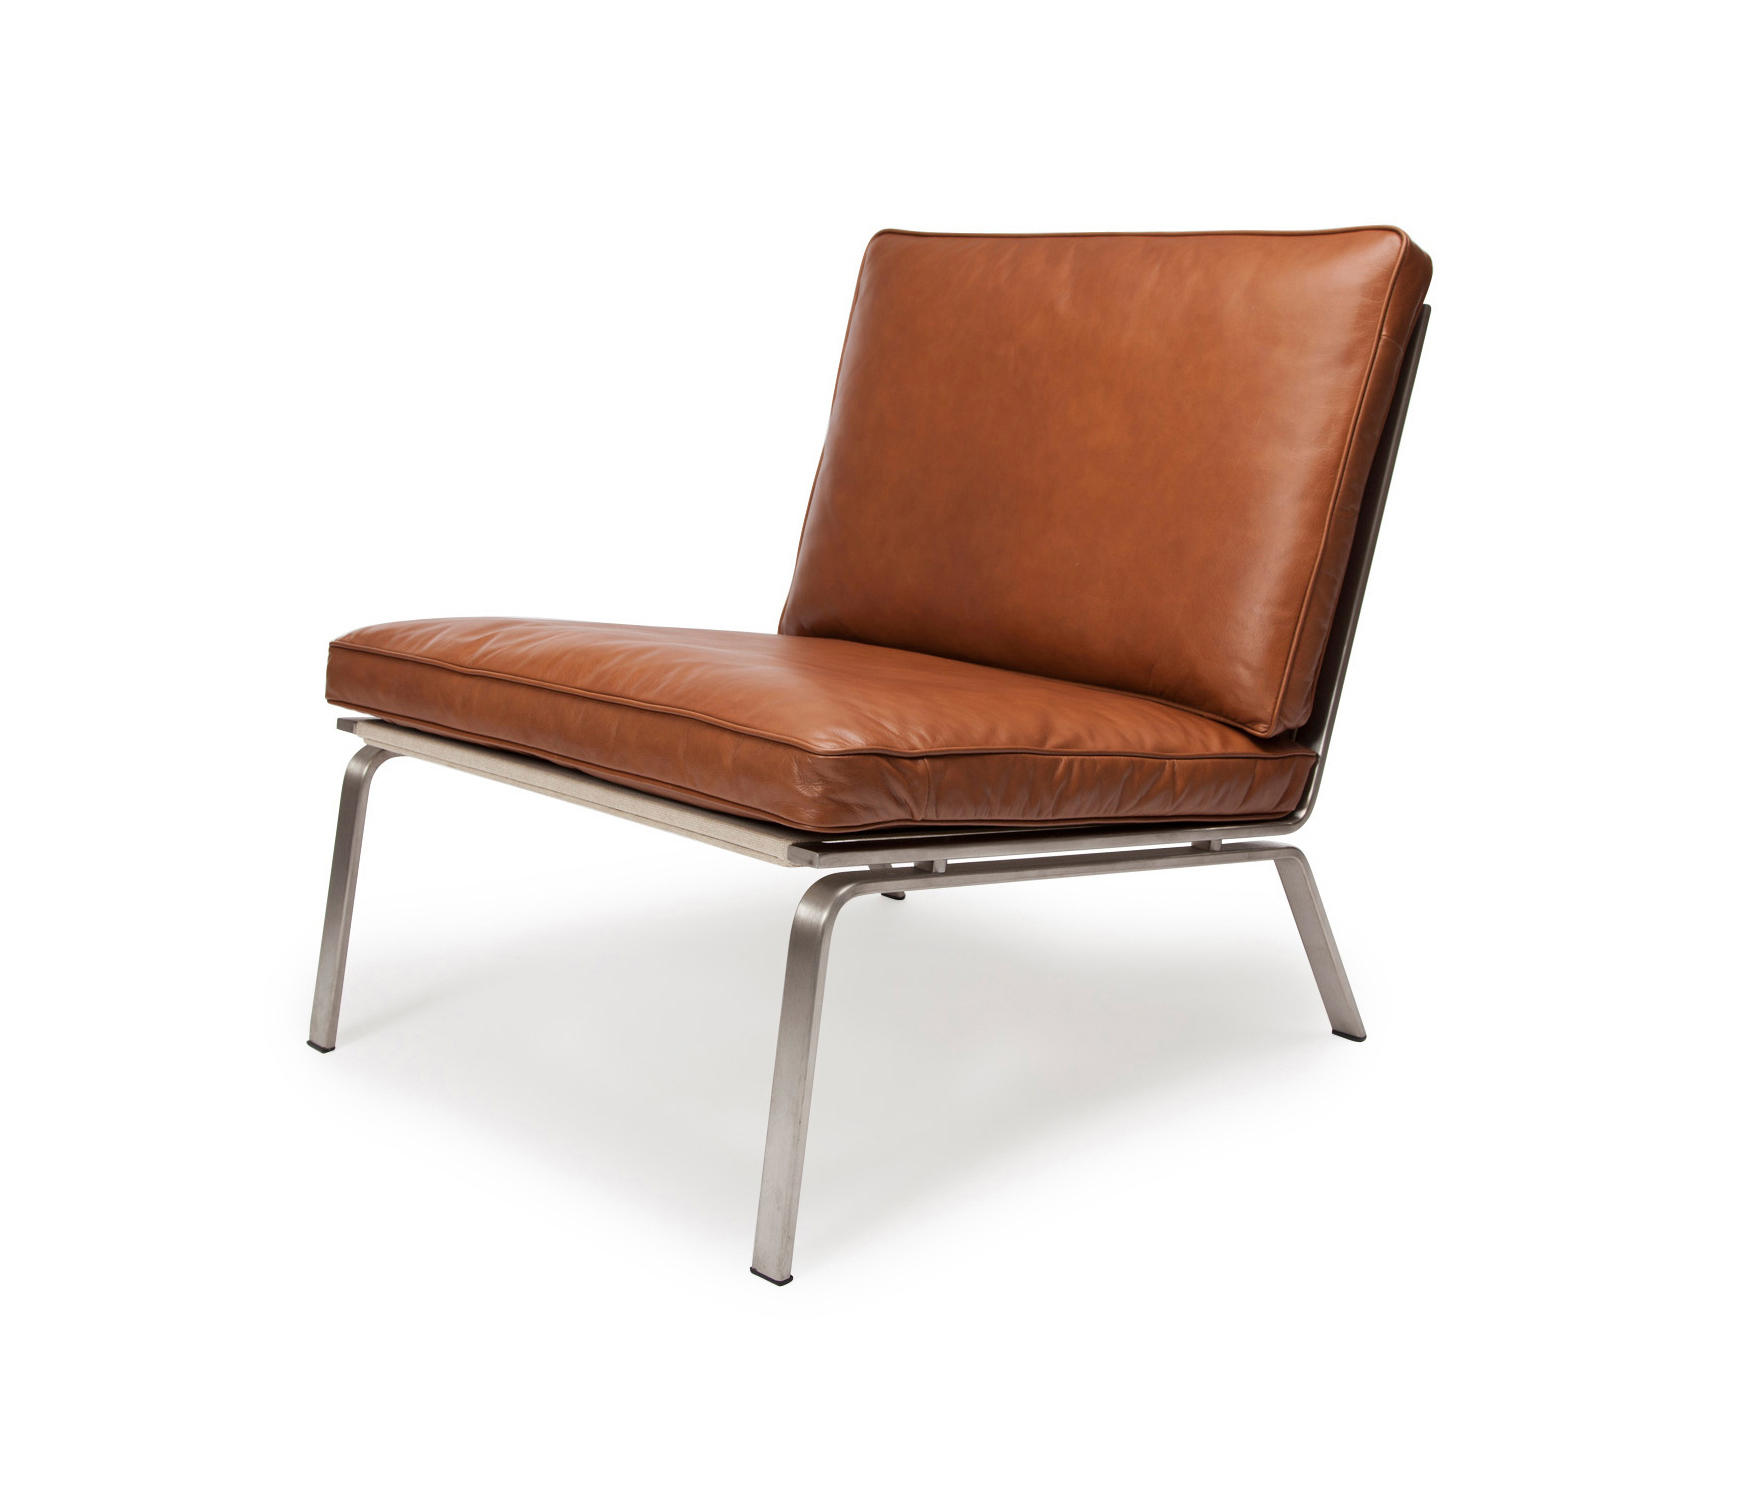 Man Lounge Chair: Vintage Leather Cognac 21000 By NORR11 | Lounge Chairs ...